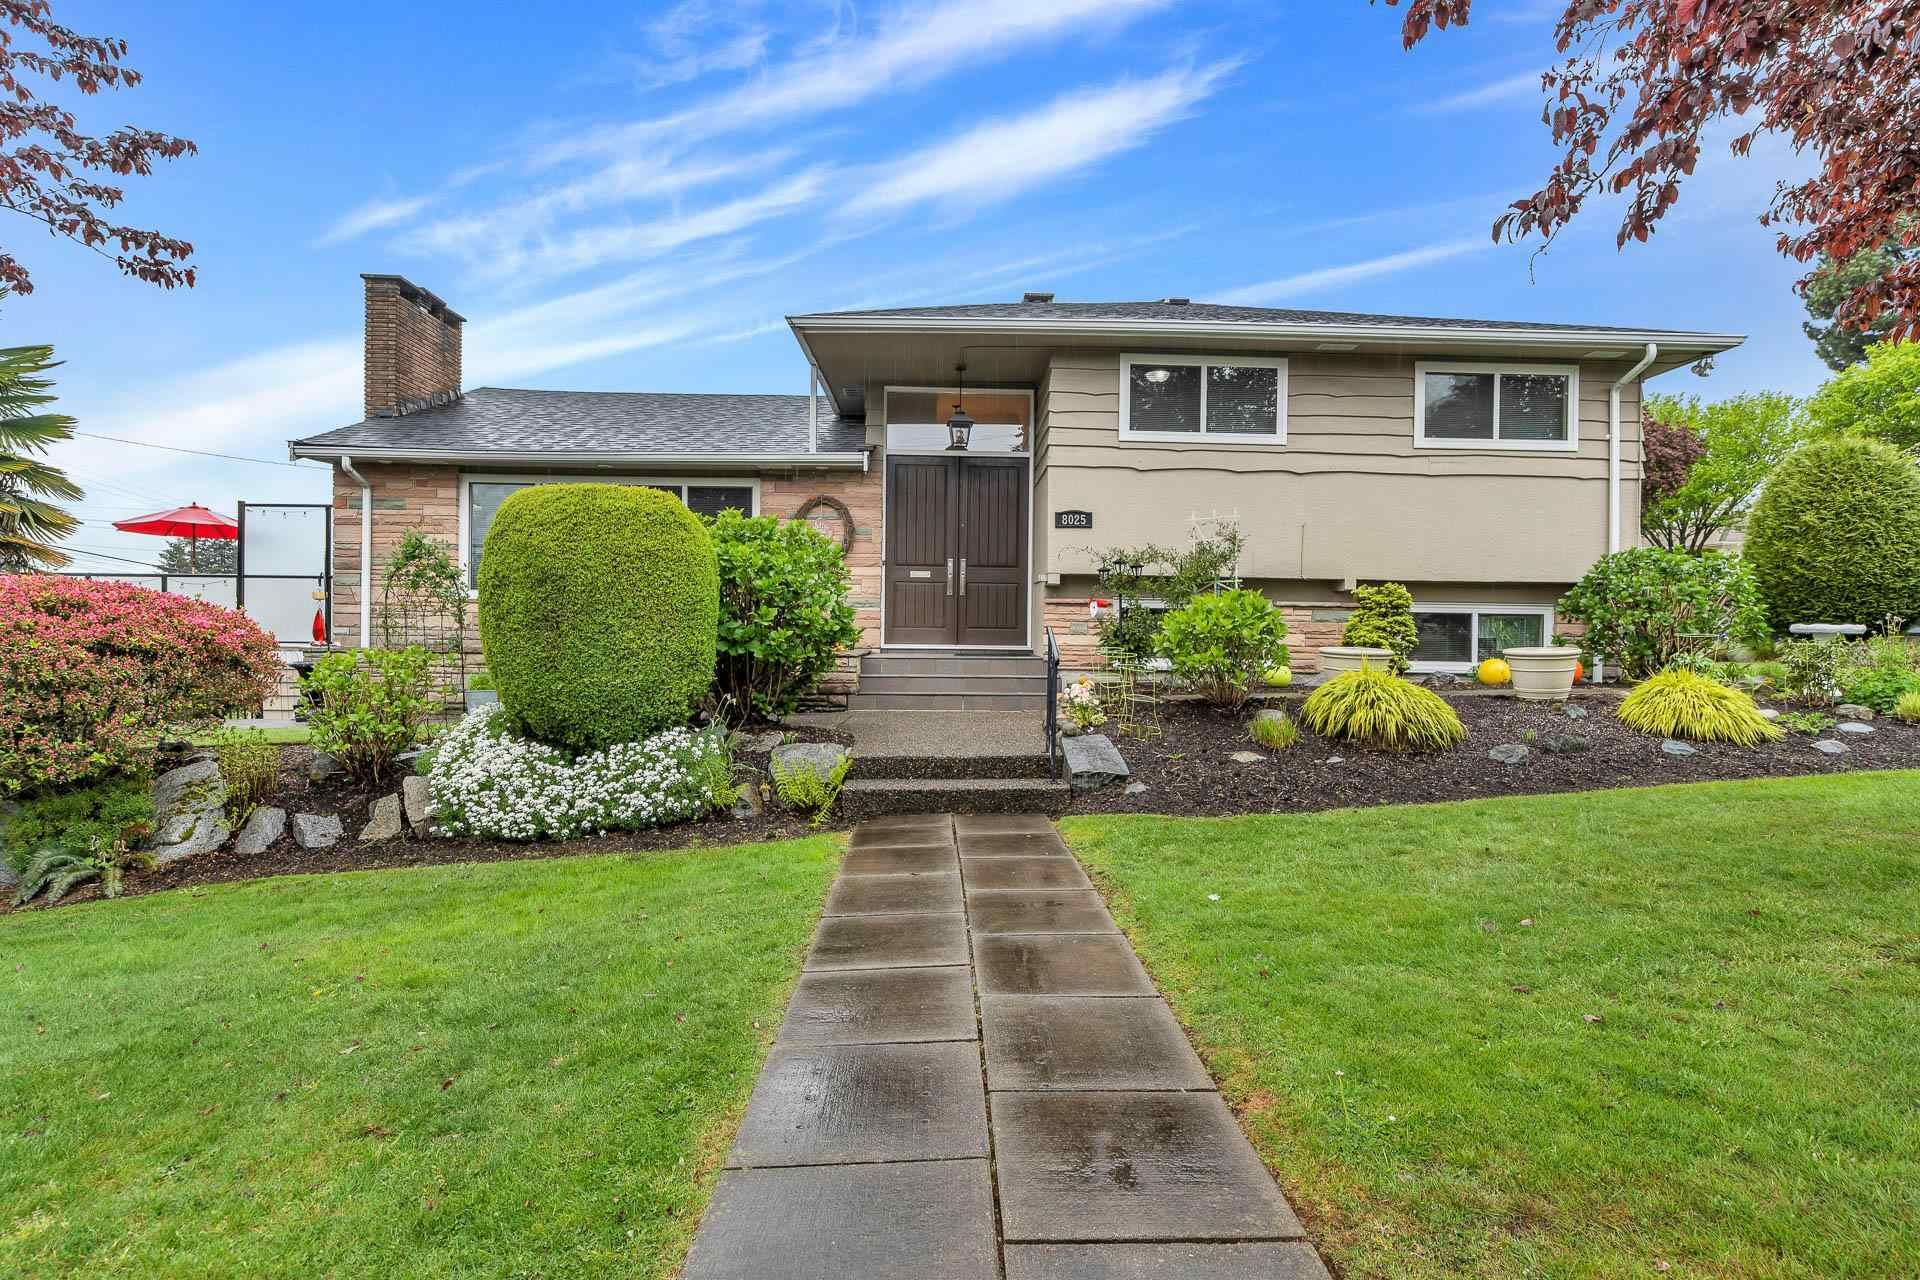 Main Photo: 8025 BORDEN Street in Vancouver: Fraserview VE House for sale (Vancouver East)  : MLS®# R2598430